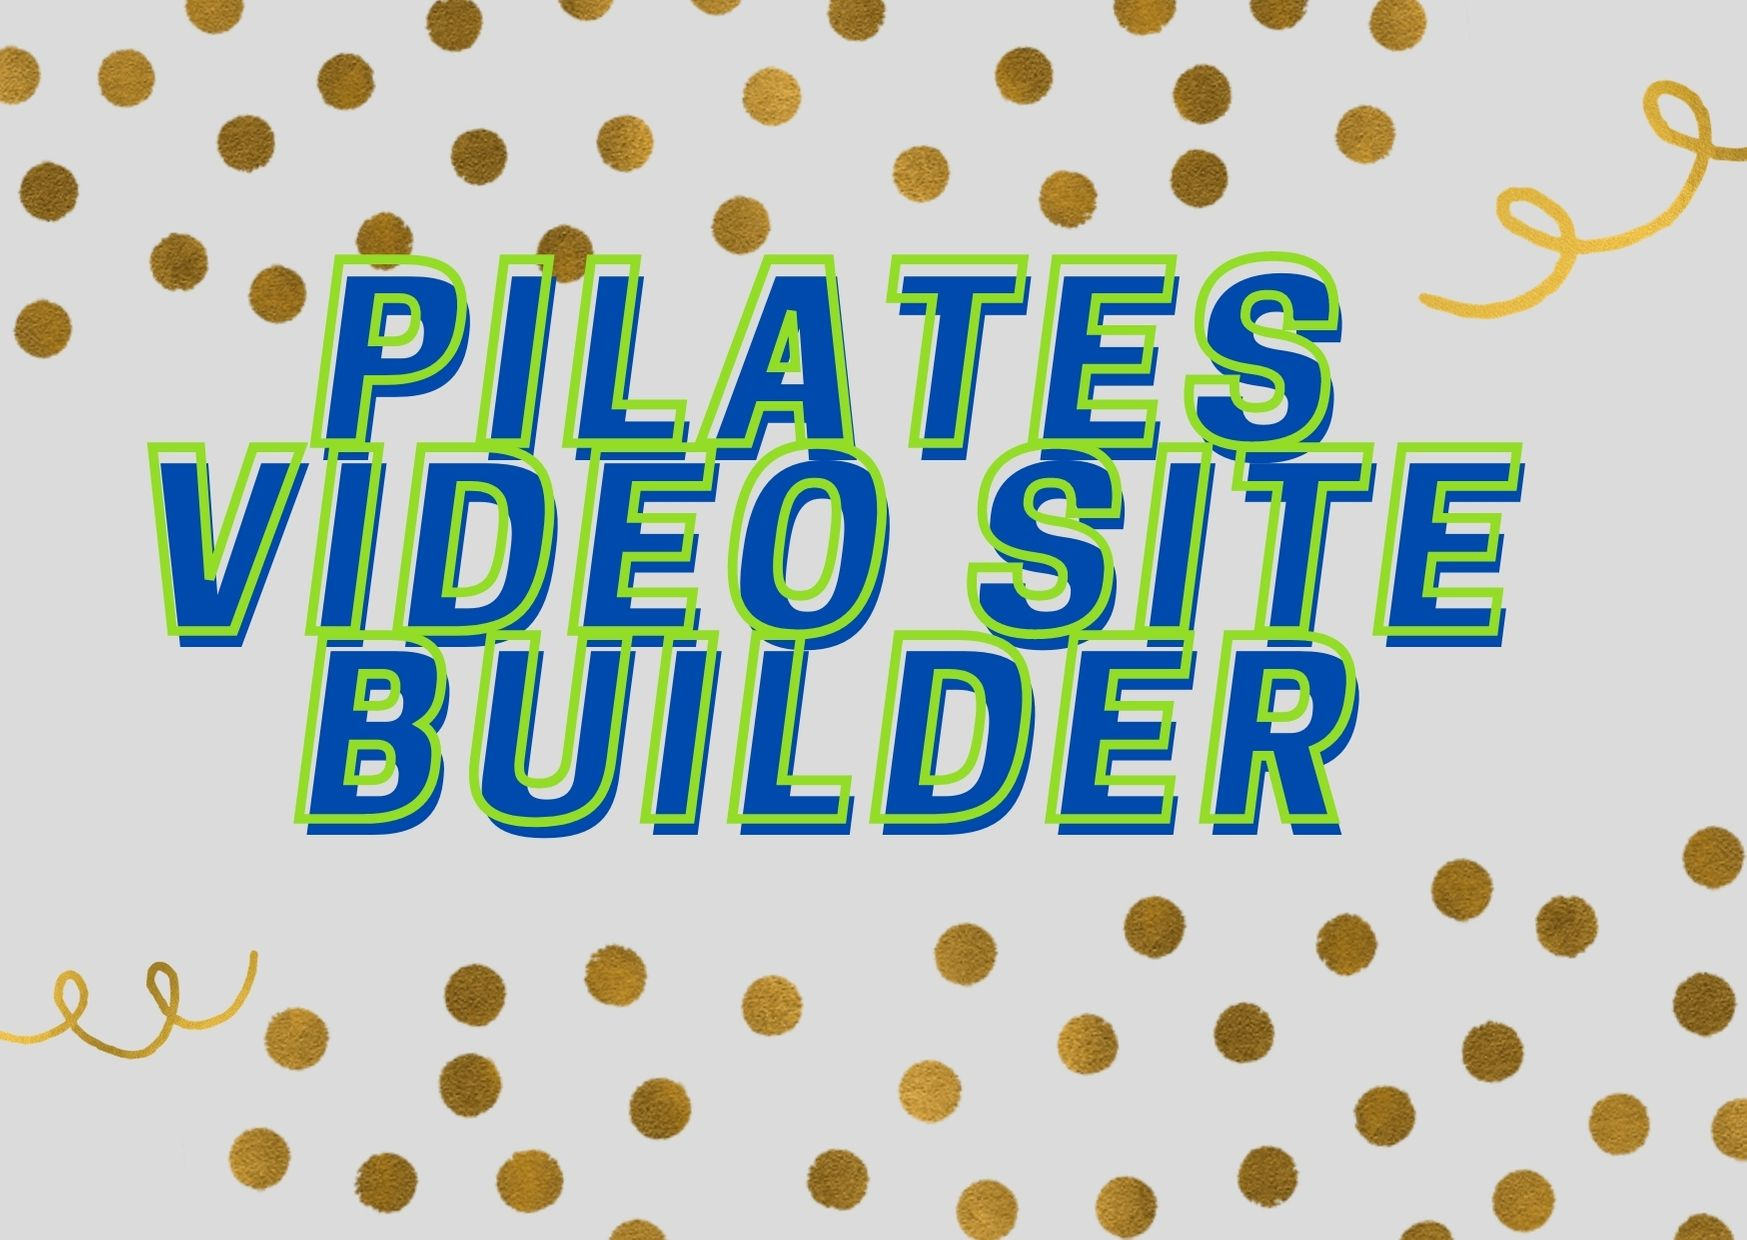 Pilates Video Site Builder This software will build a video site that you can upload to your web hos